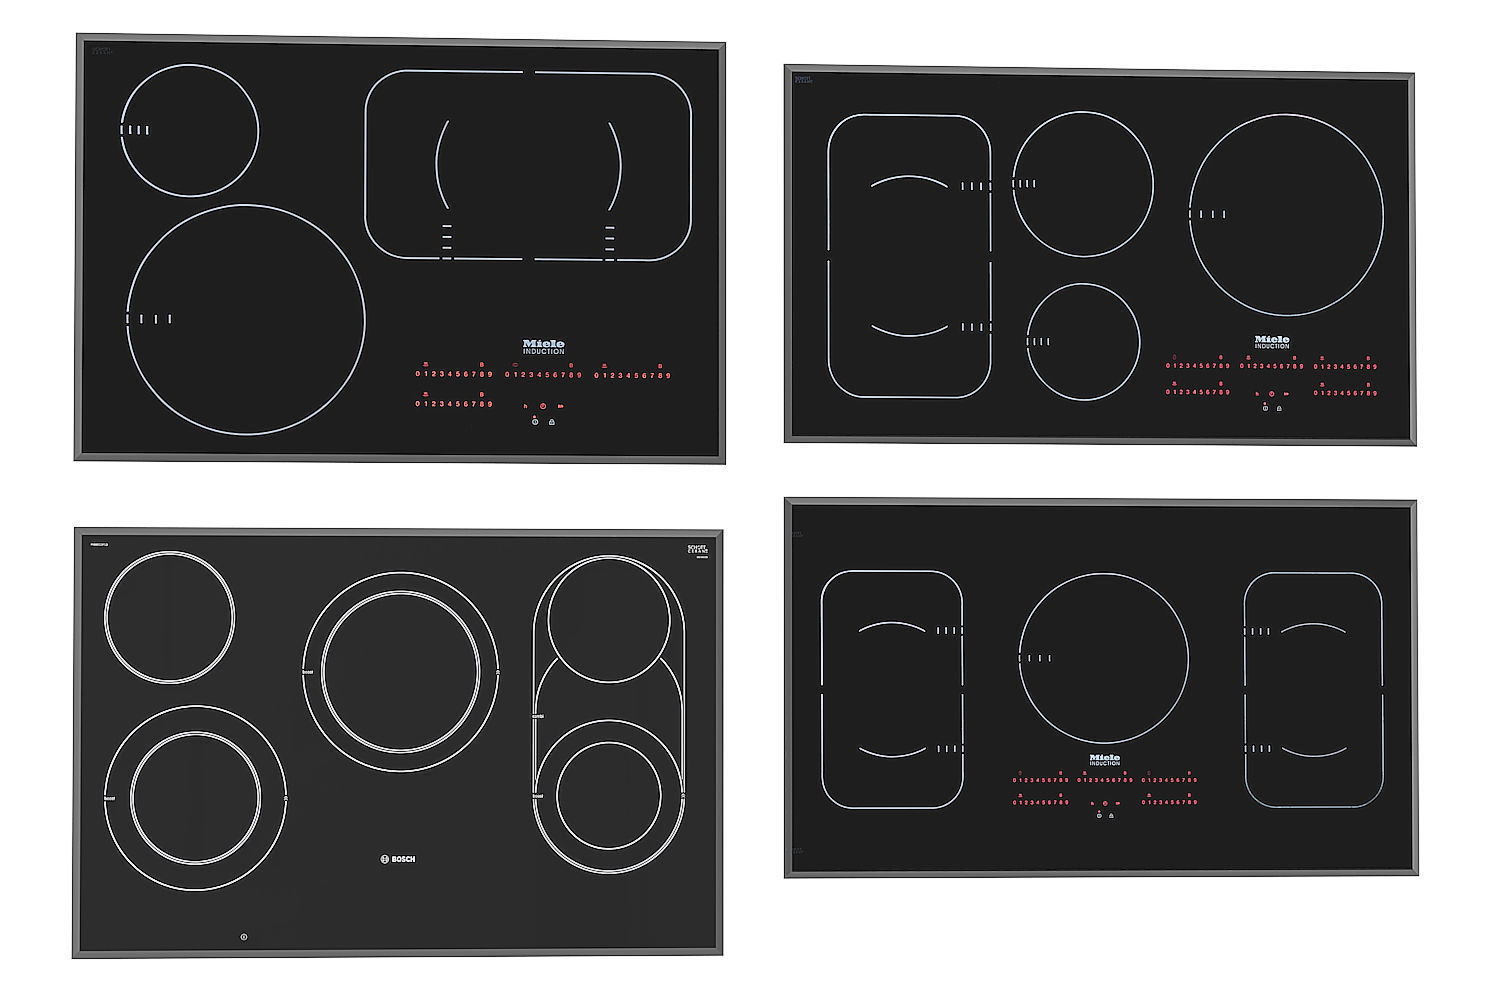 Induction hob 02